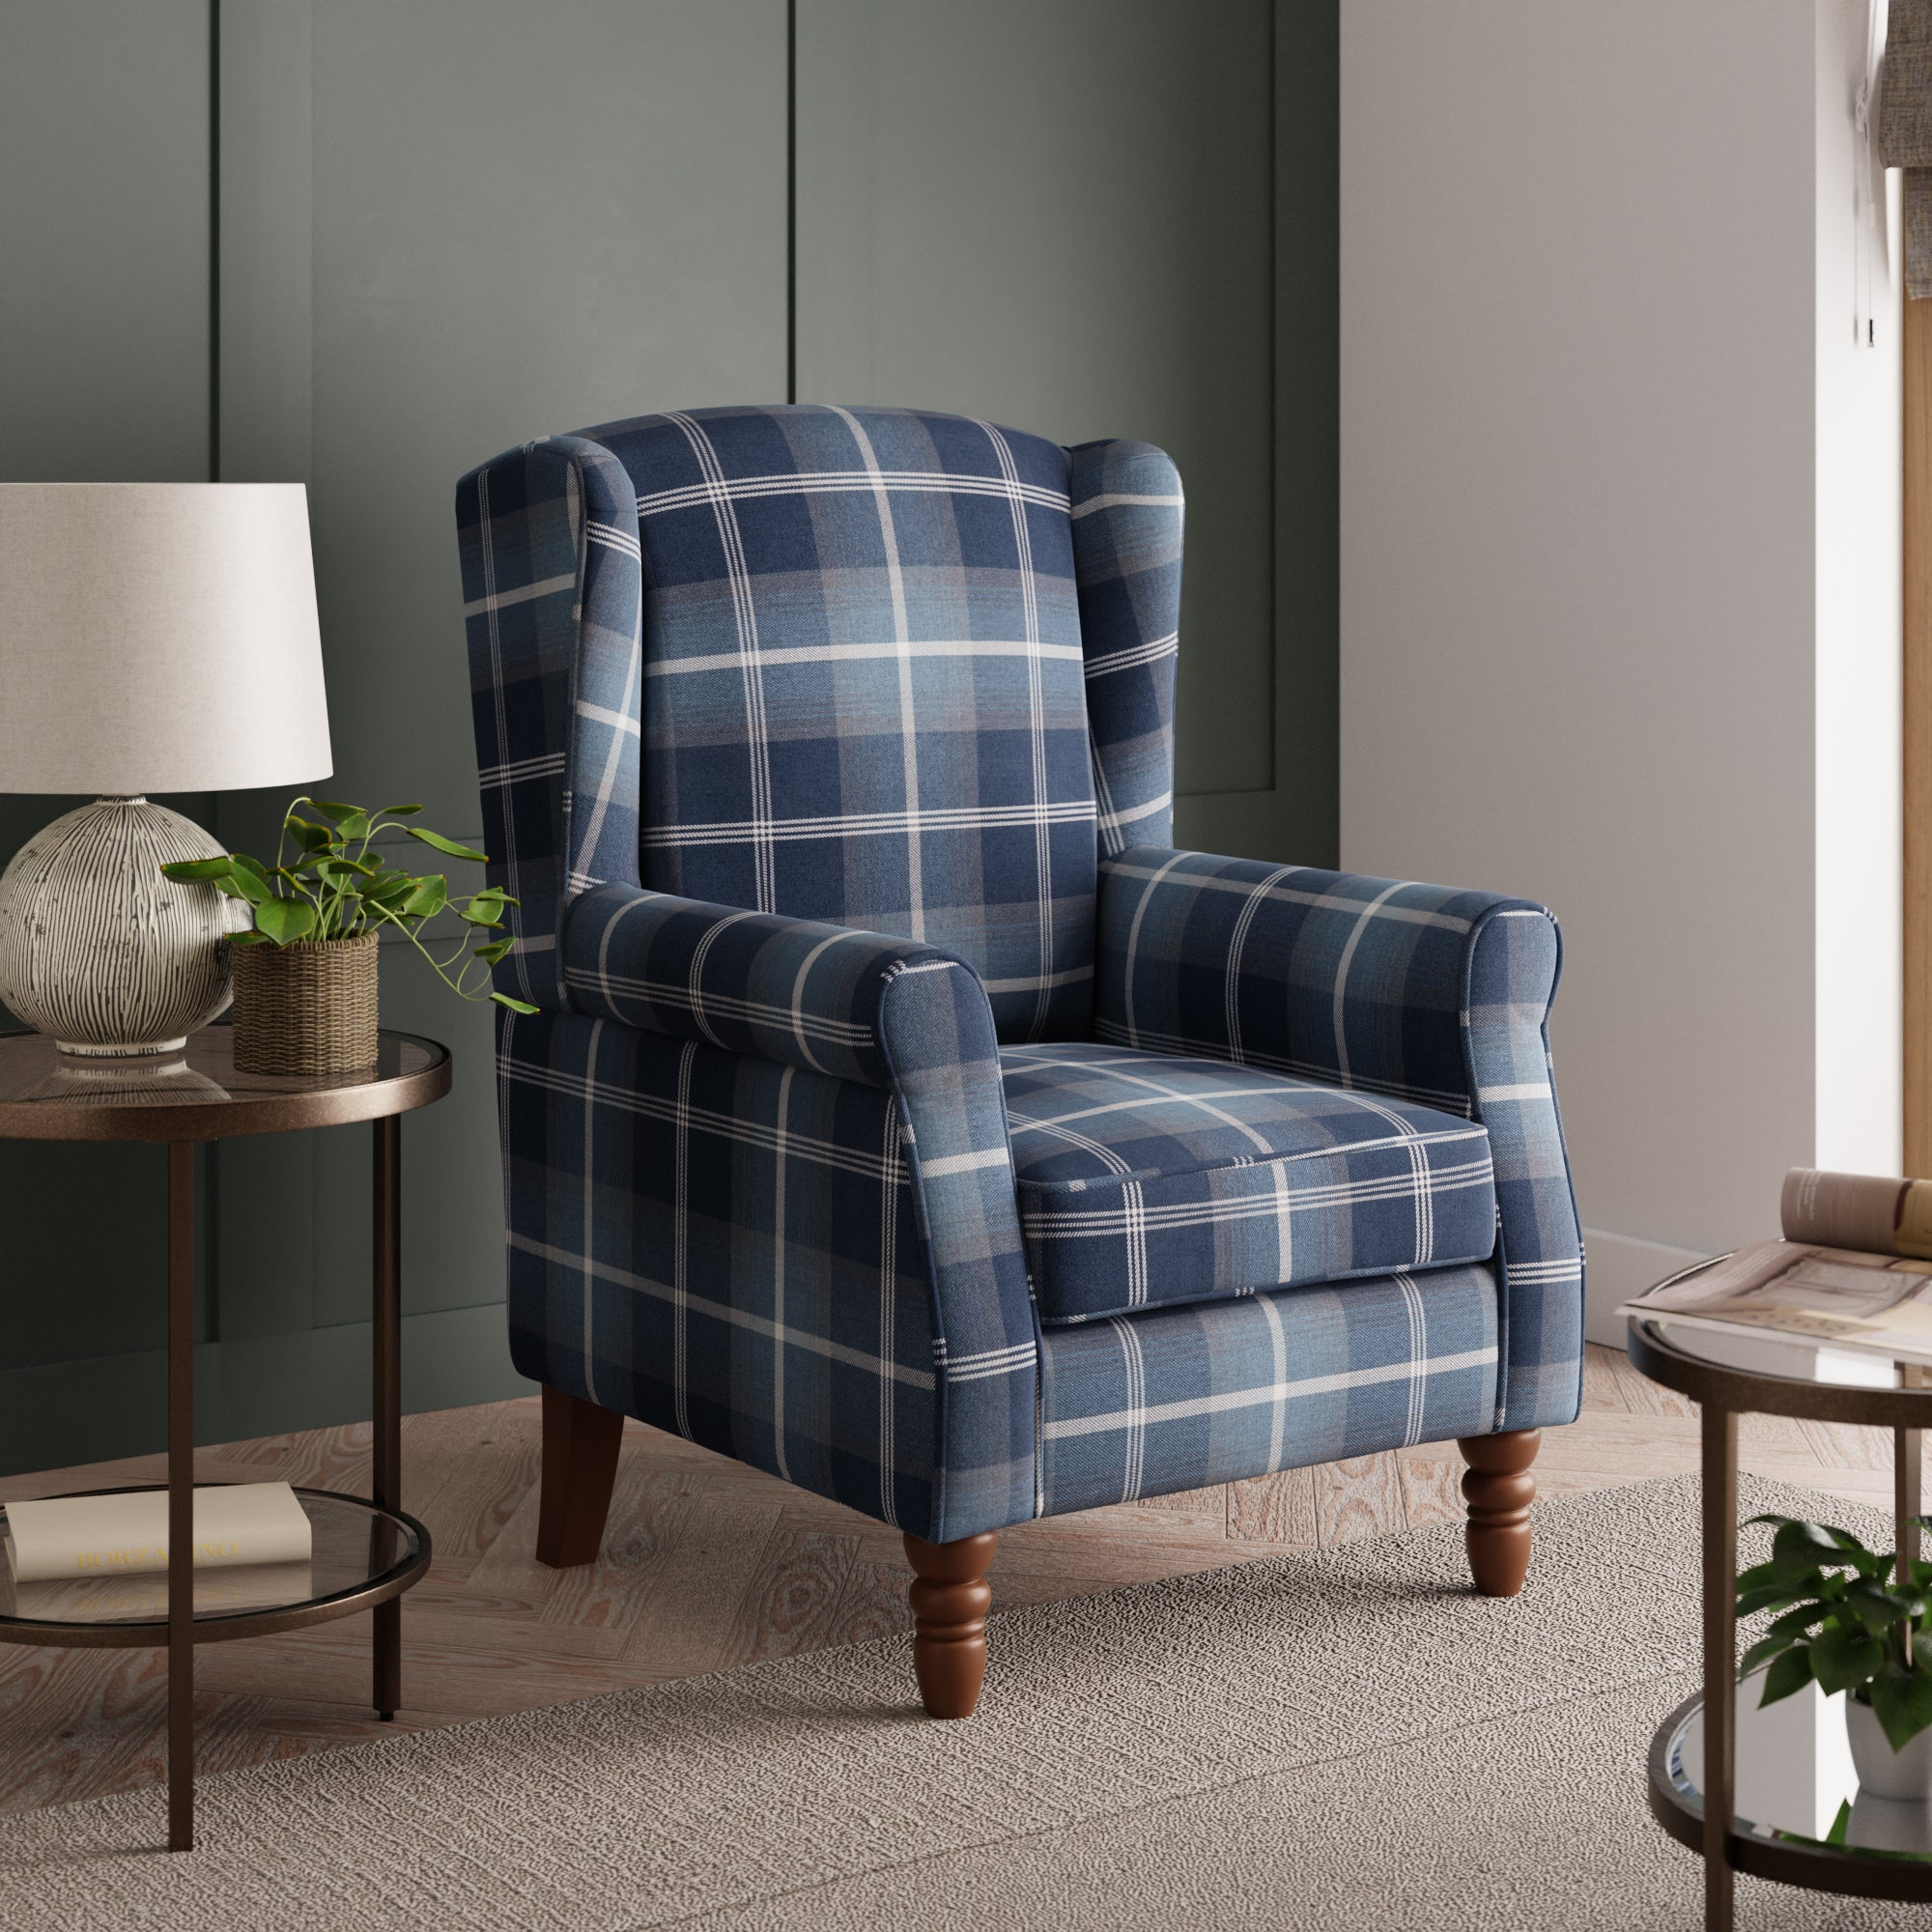 Oswald Check Wingback Armchair - Navy Blue, Beige and White